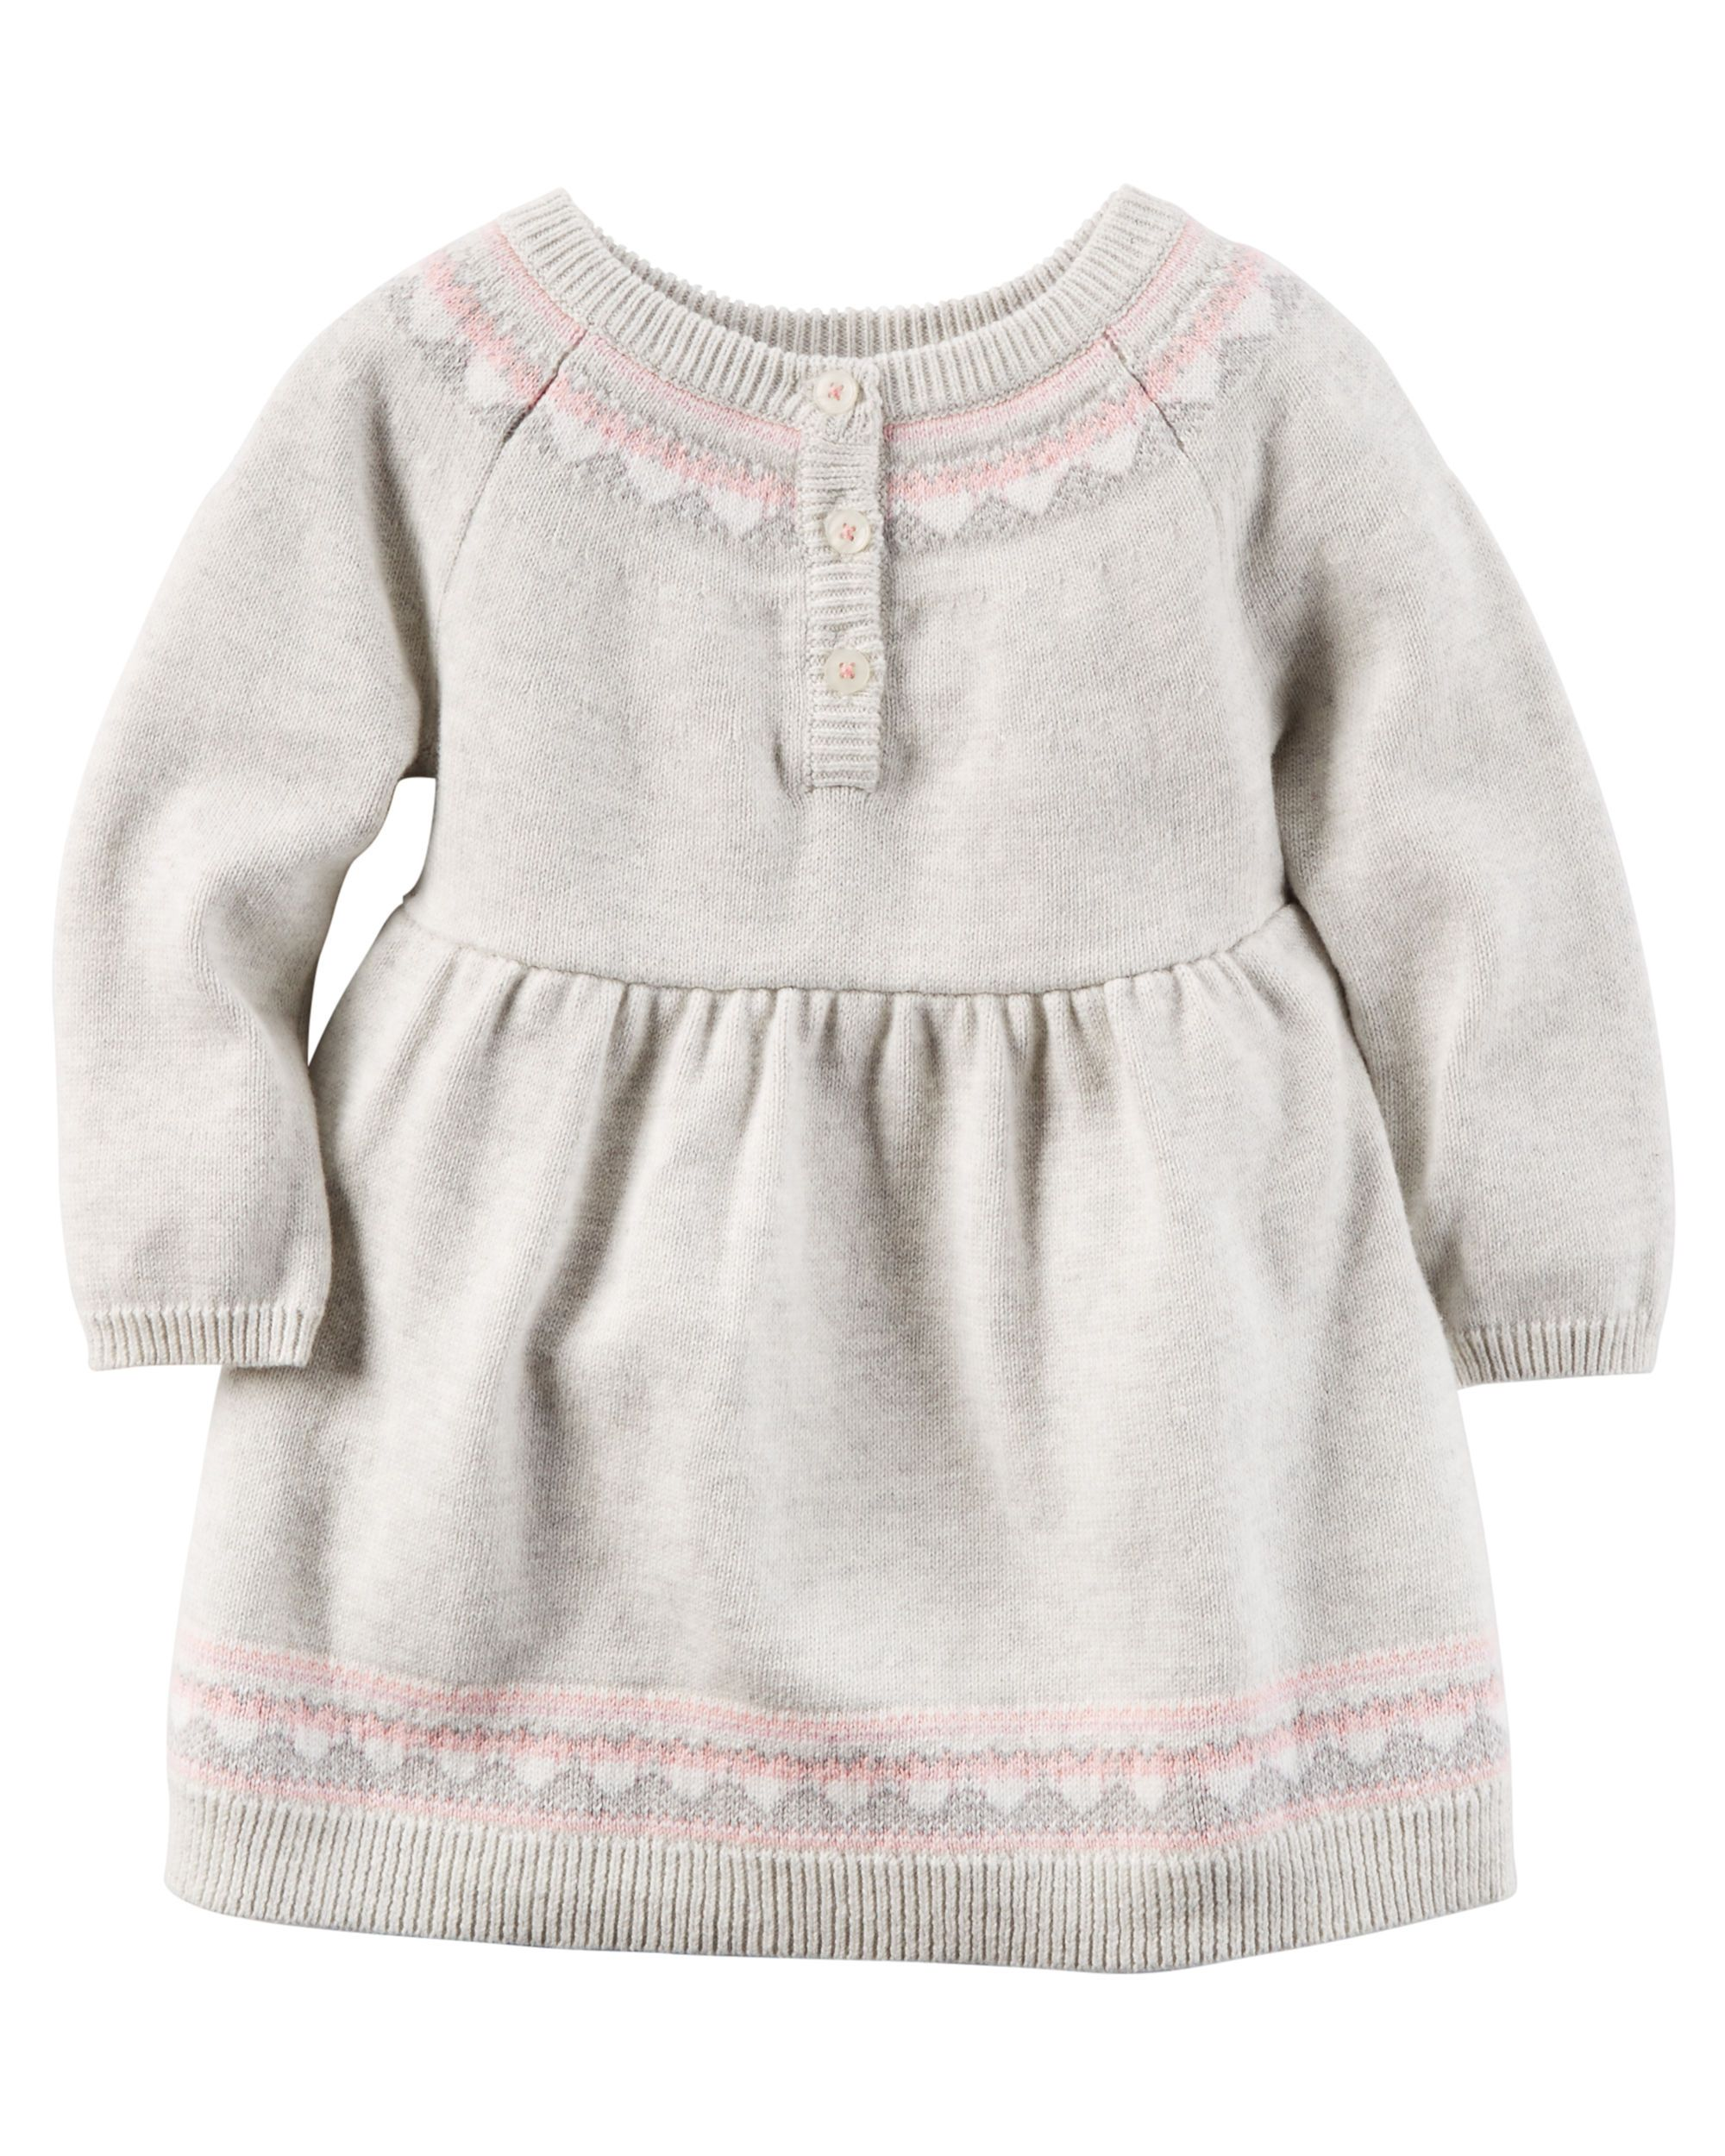 2de4ce426f78 Baby Girl Sweater Dress from Carters.com. Shop clothing ...